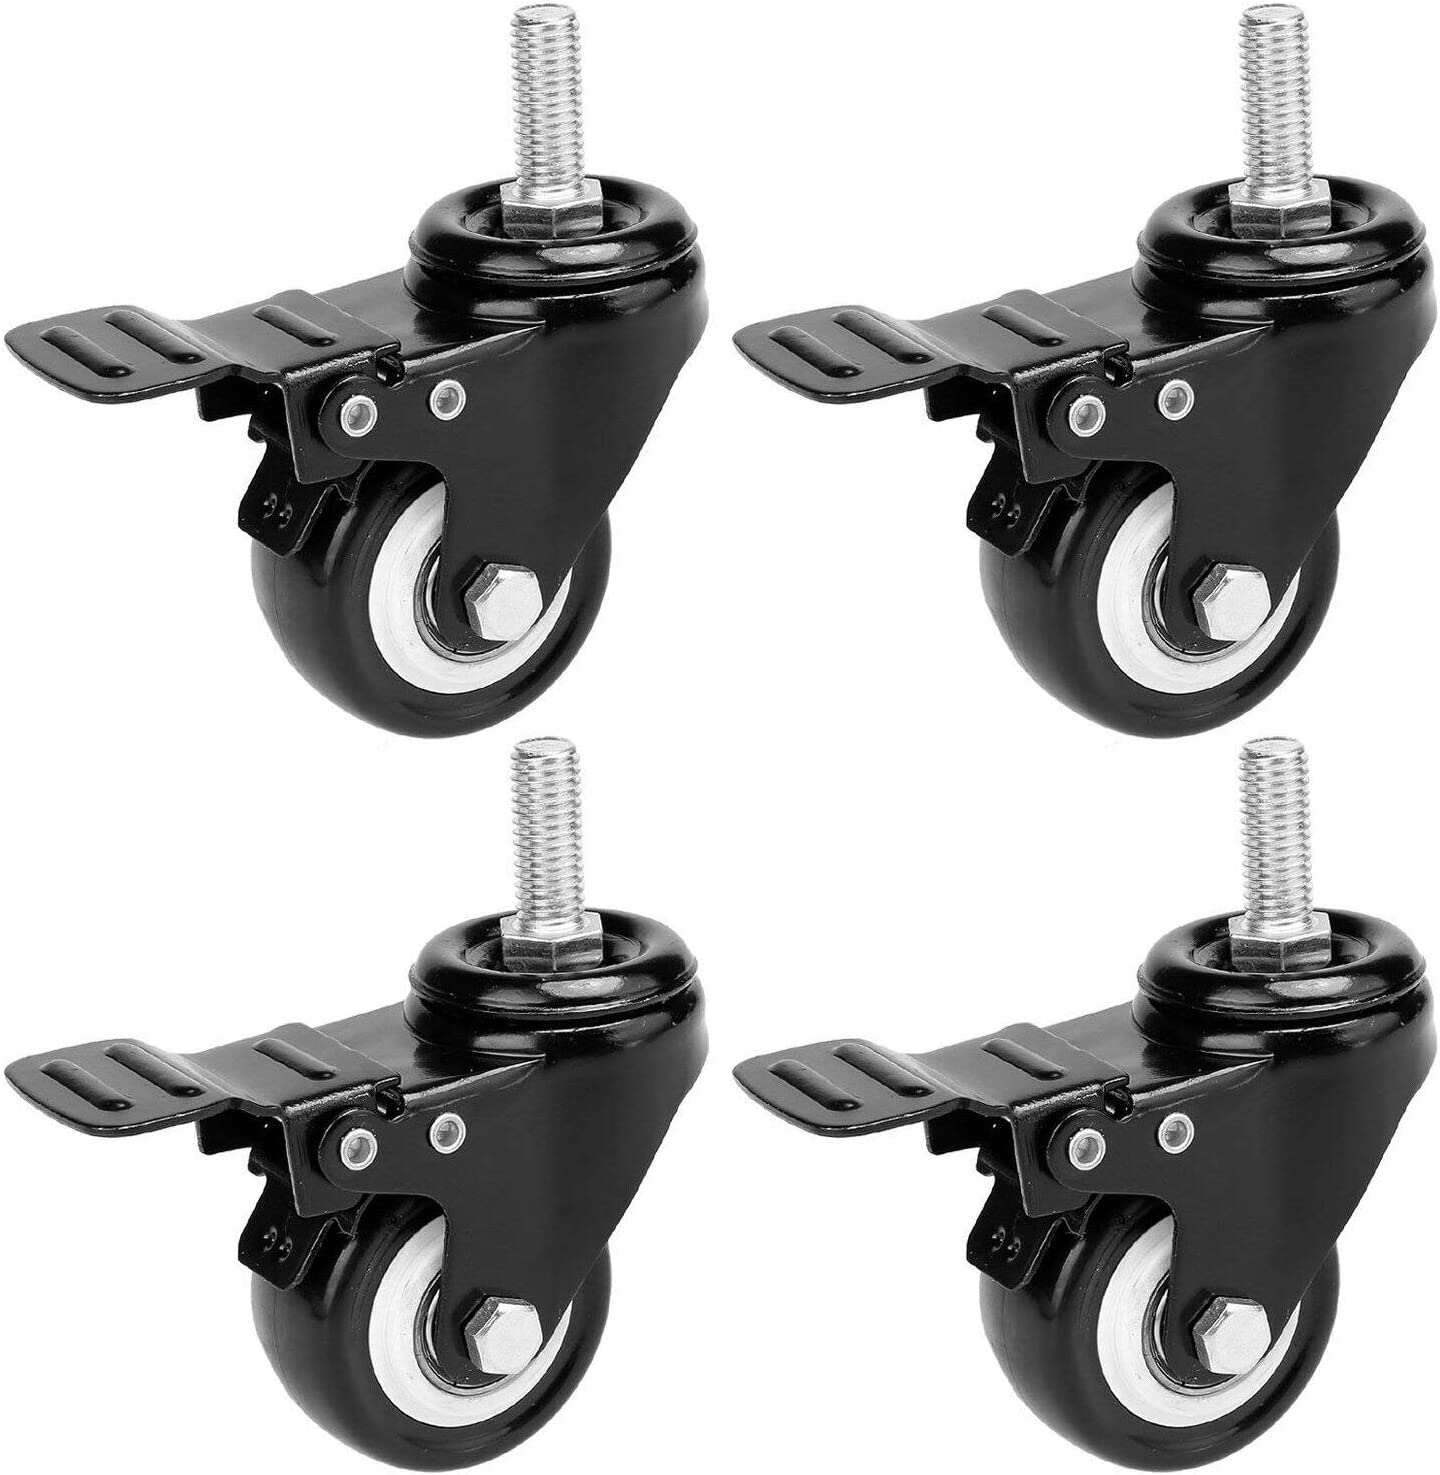 Fetcus Casters - 4 x Don't miss the campaign Ranking TOP8 50mm Wheels Swivel Castor F Trolley